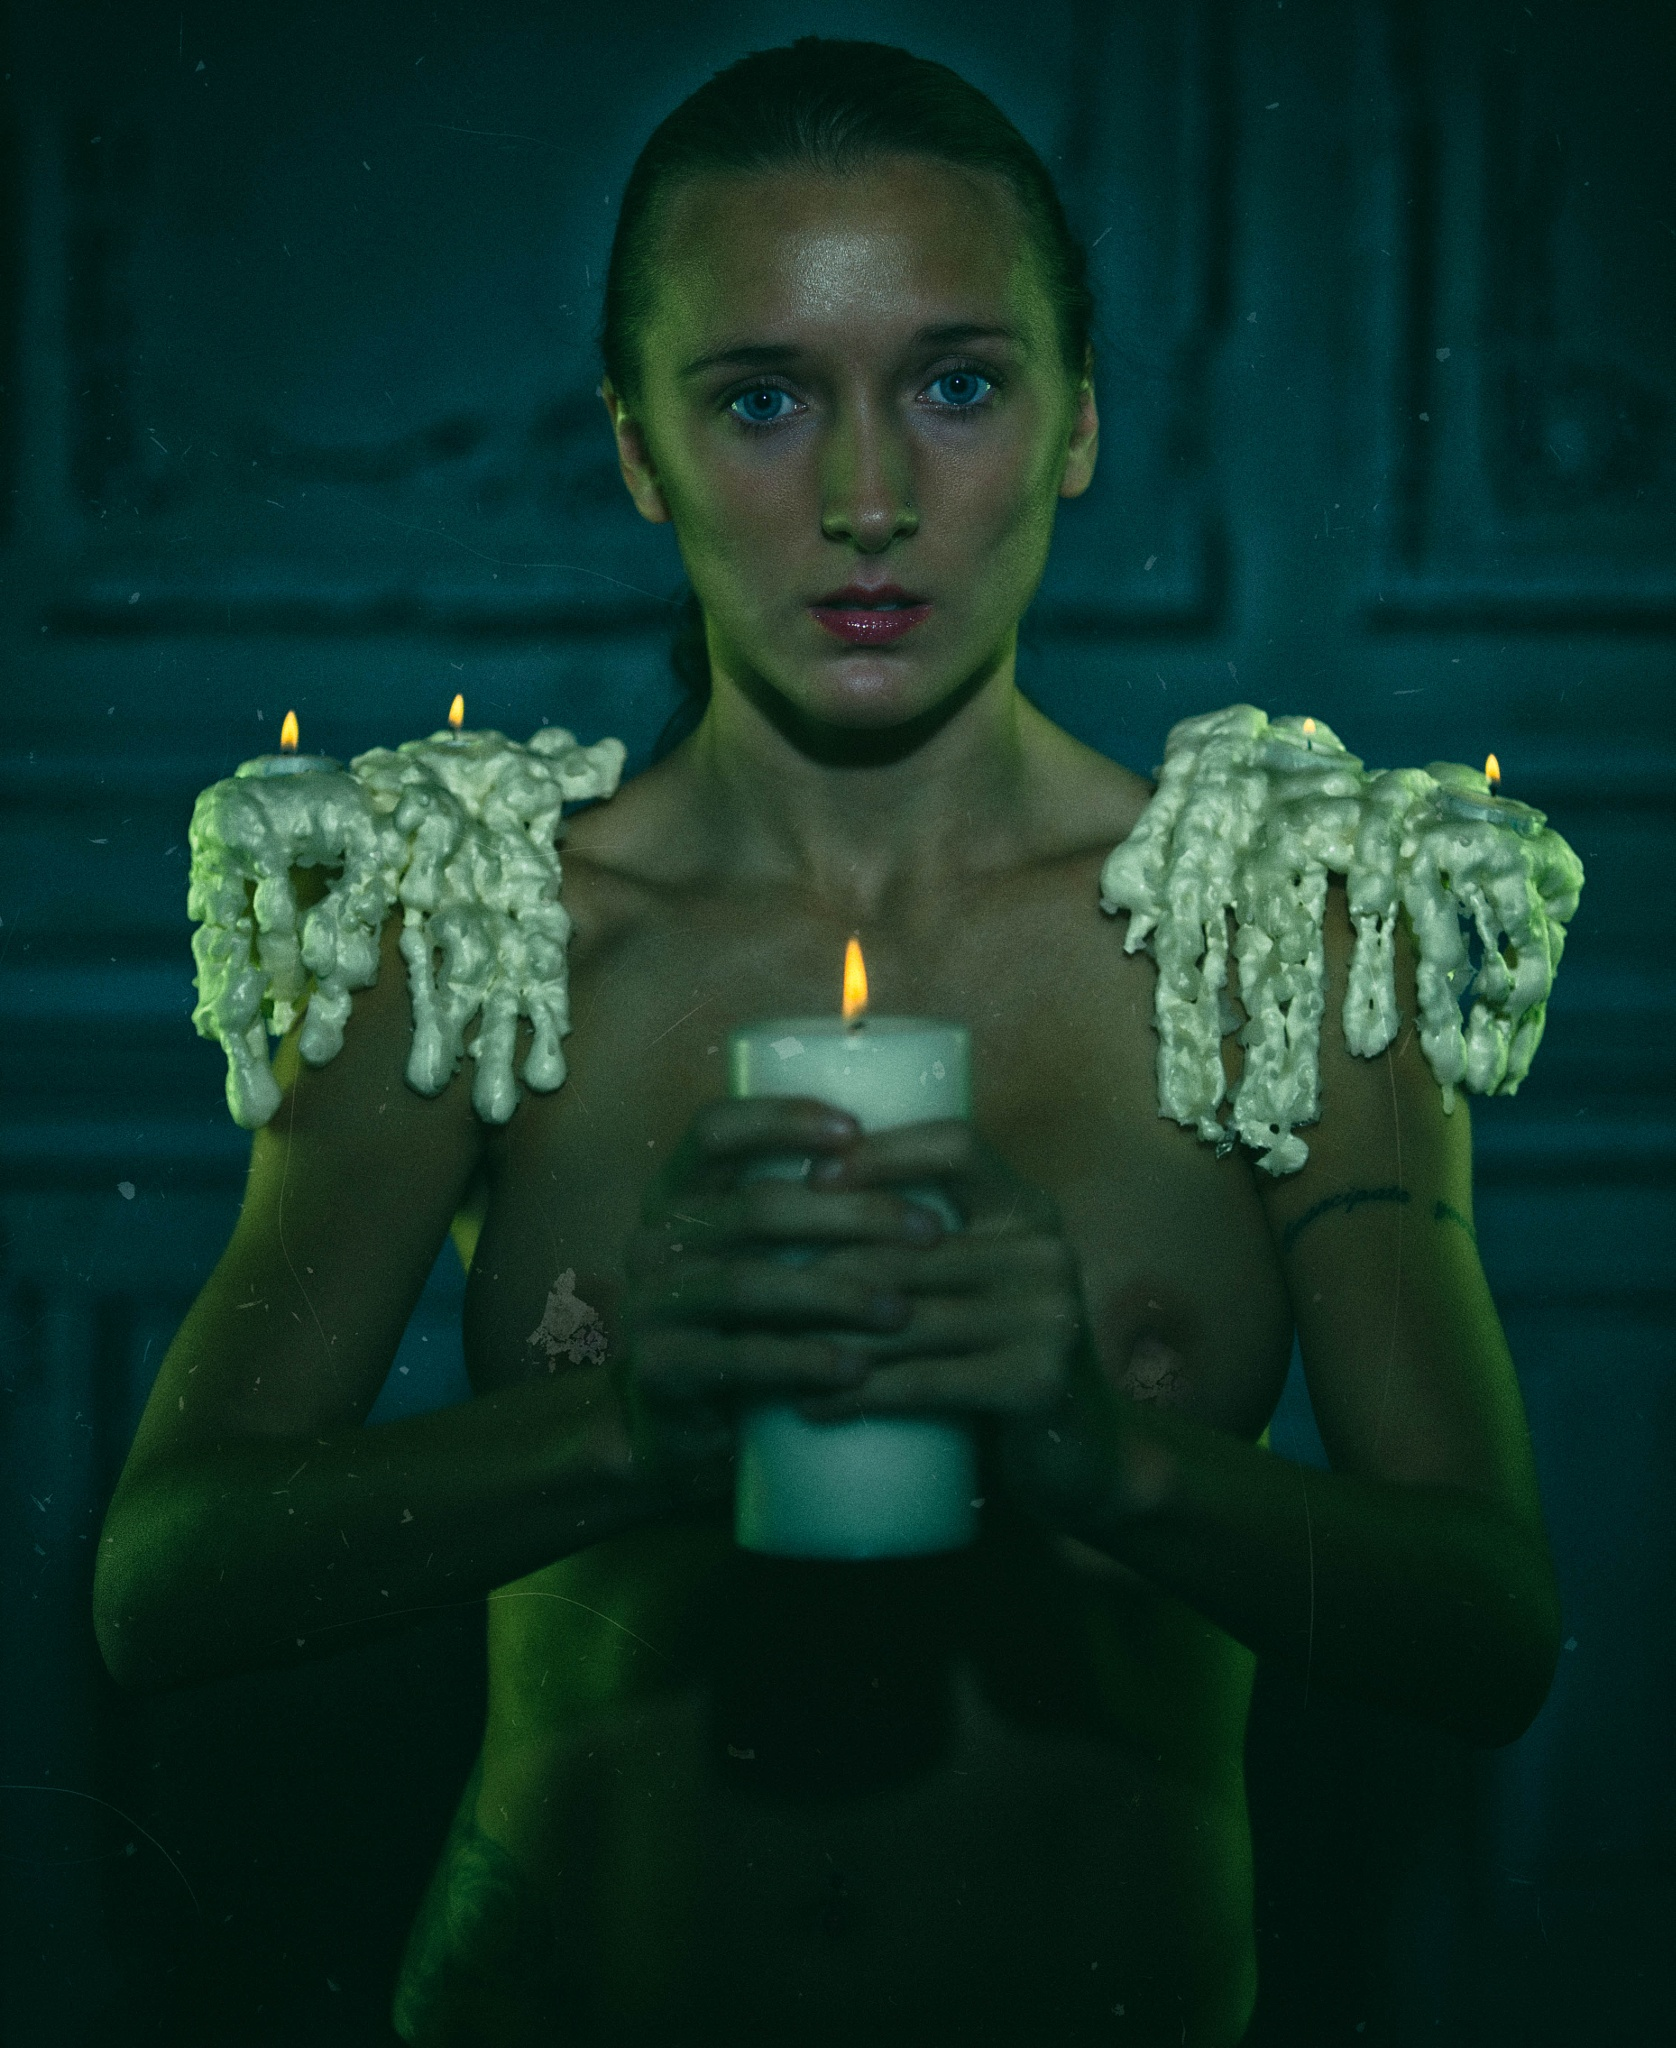 Goddess by candle light by Joseph Harrison